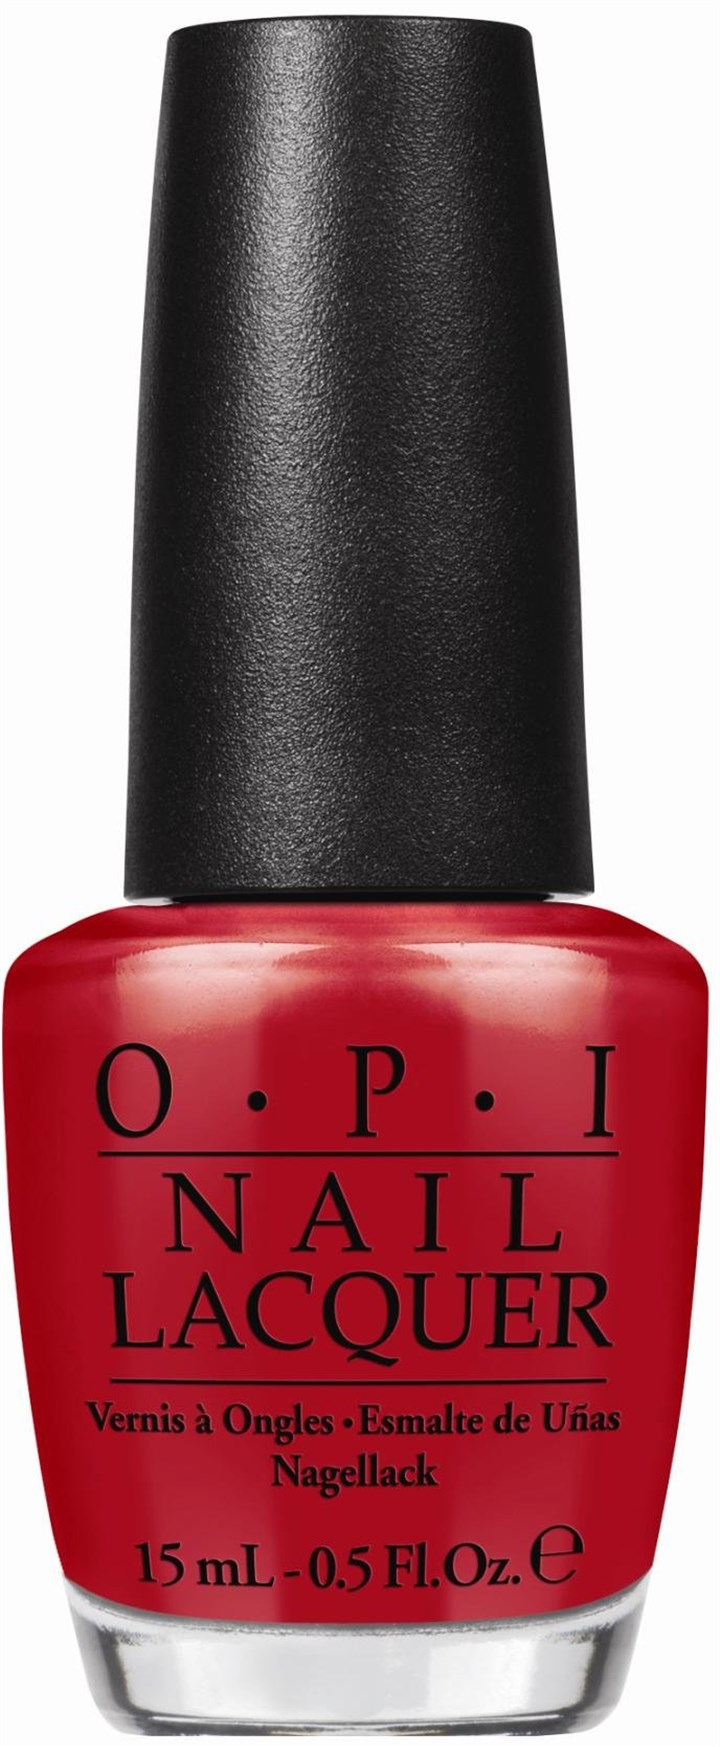 ShortSTOP-1 by OPI Short-STOP rich creme red from MLB Collection by OPI, $9.00.